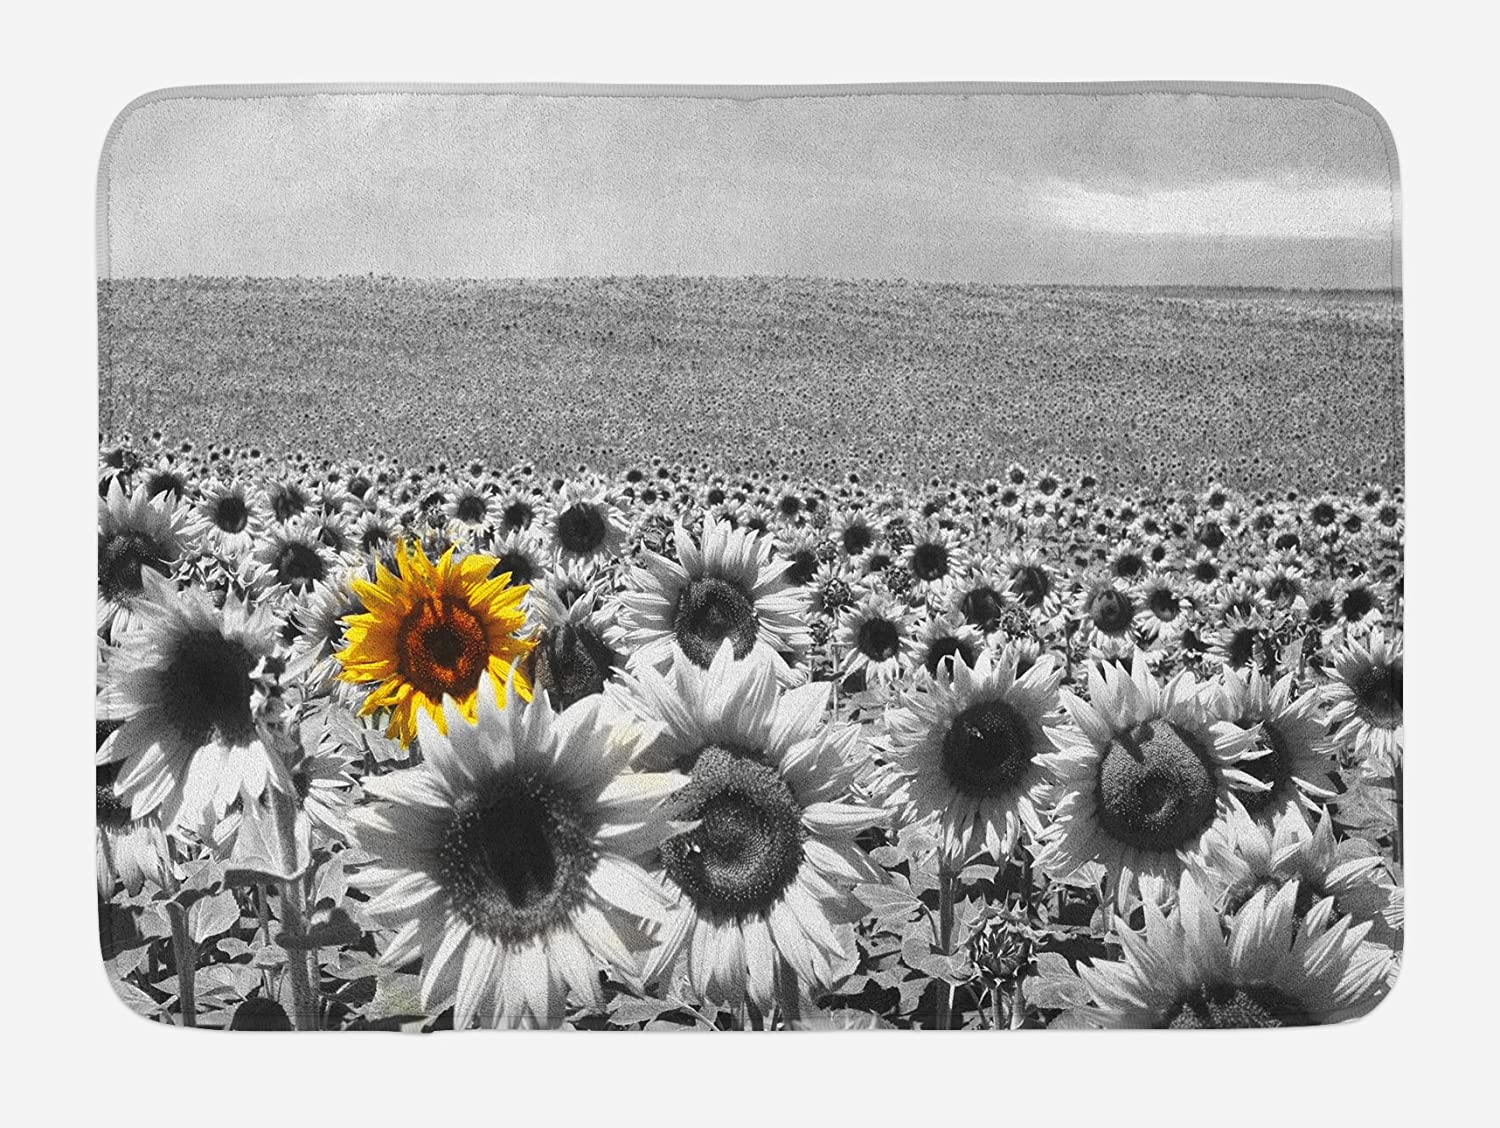 Lunarable Modern Bath Mat, Sunflower Field Black and White with a Single Yellow Flower Spring Landscape Individuality, Plush Bathroom Decor Mat with Non Slip Backing, 29.5